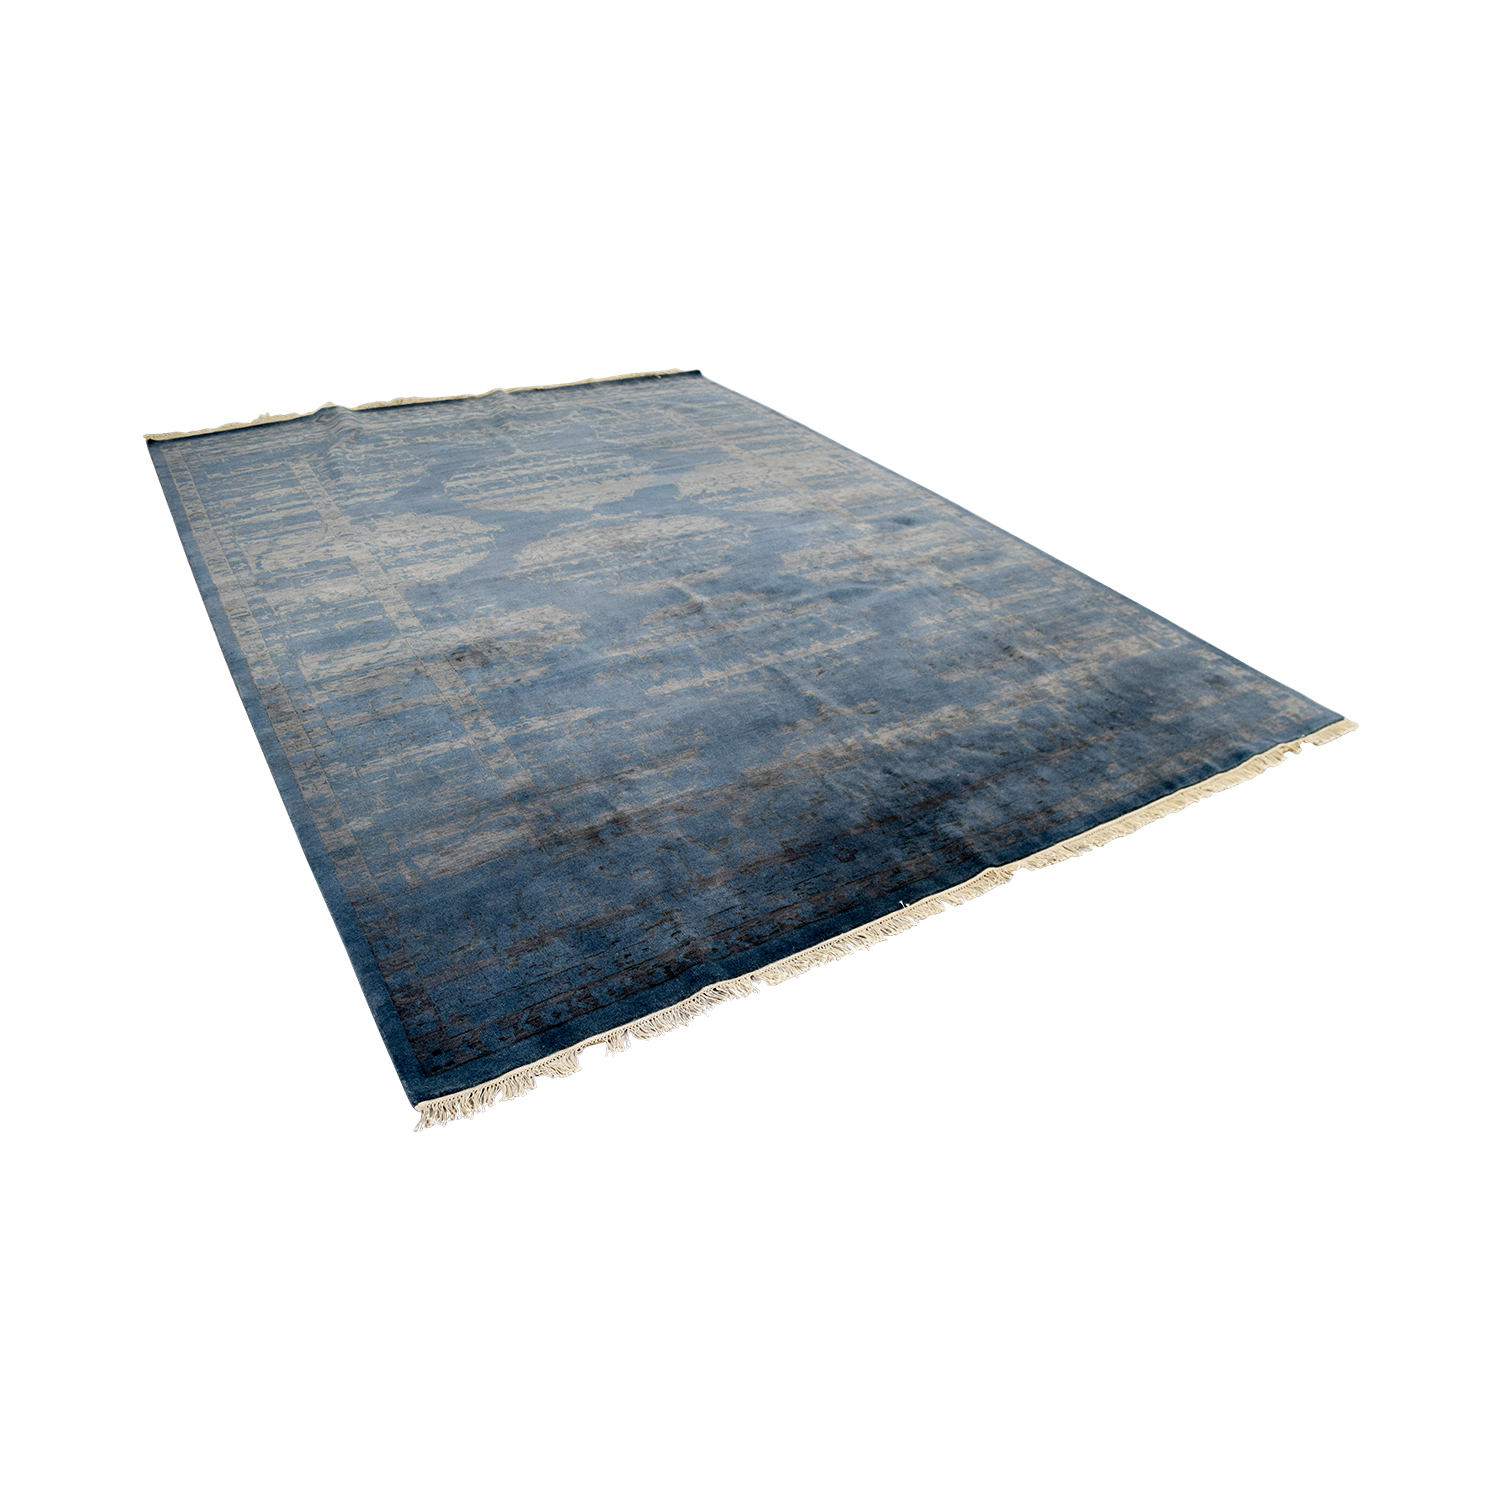 Room & Board Sivas Blue Rug / Decor